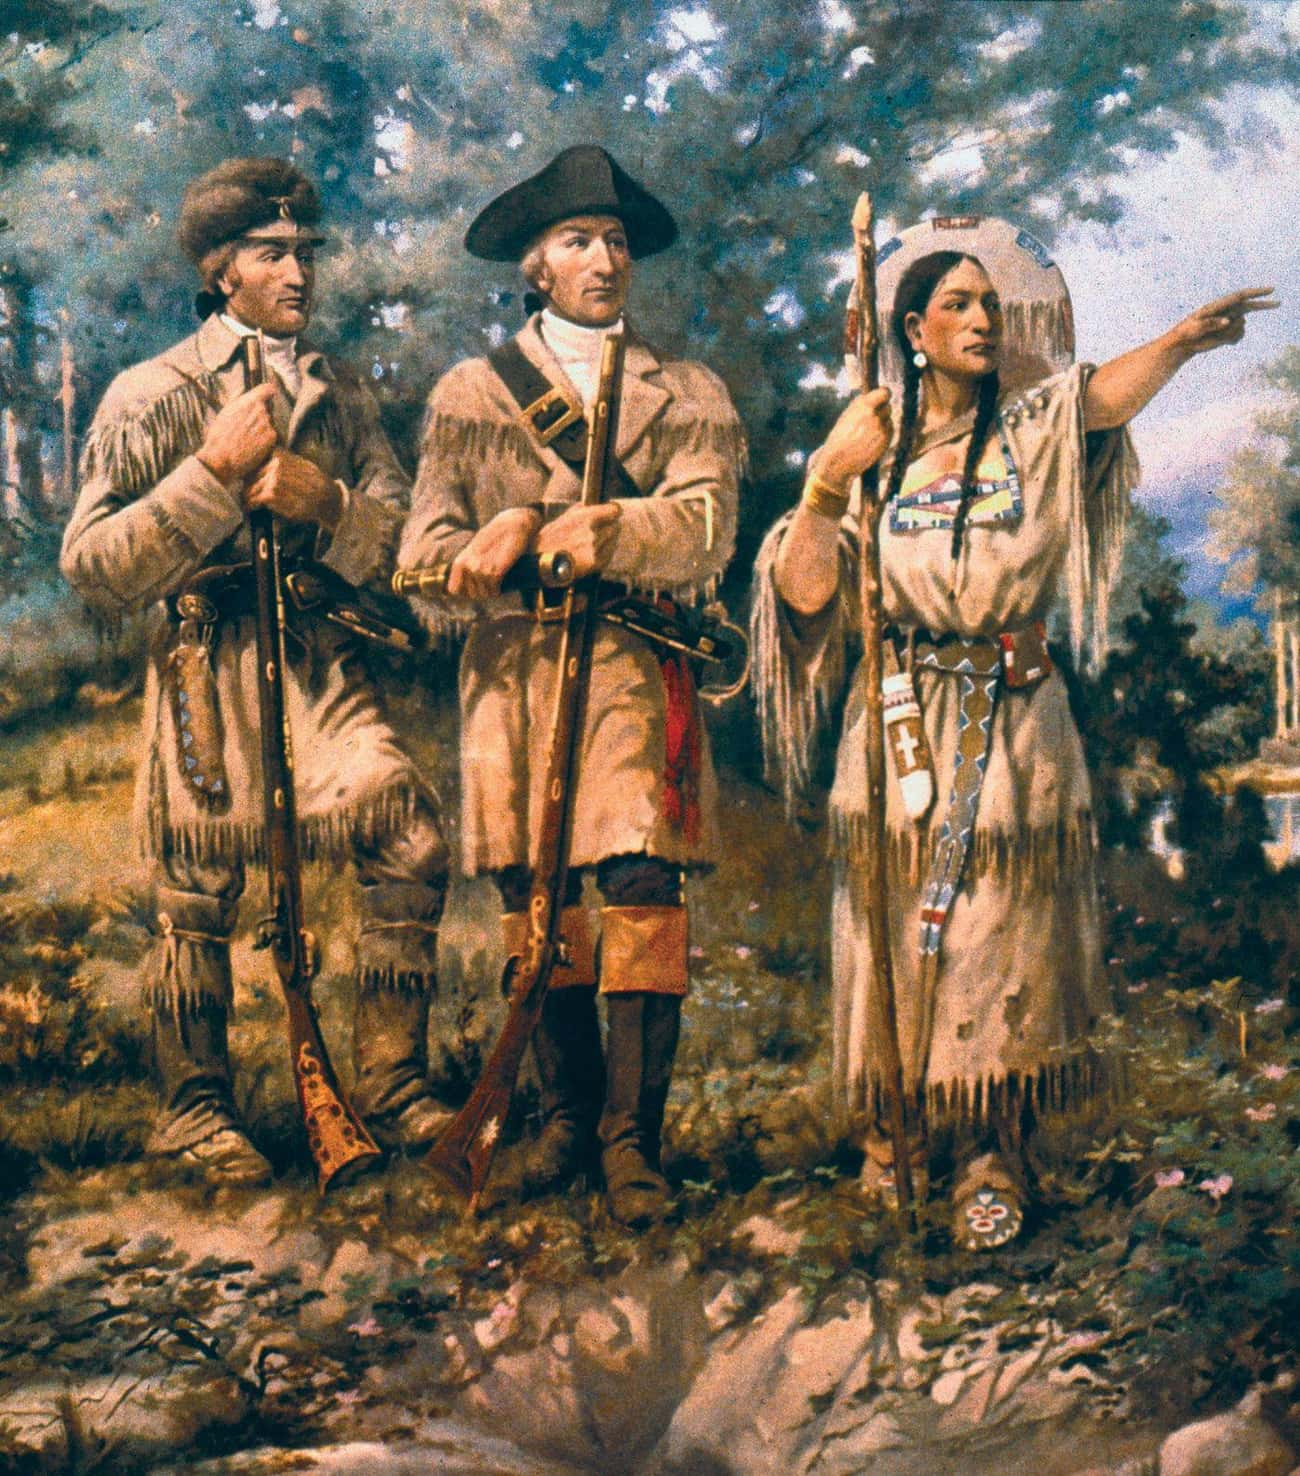 She was Kidnapped and Married  is listed (or ranked) 2 on the list 10 Facts About the Bold, Brave Life of Sacagawea